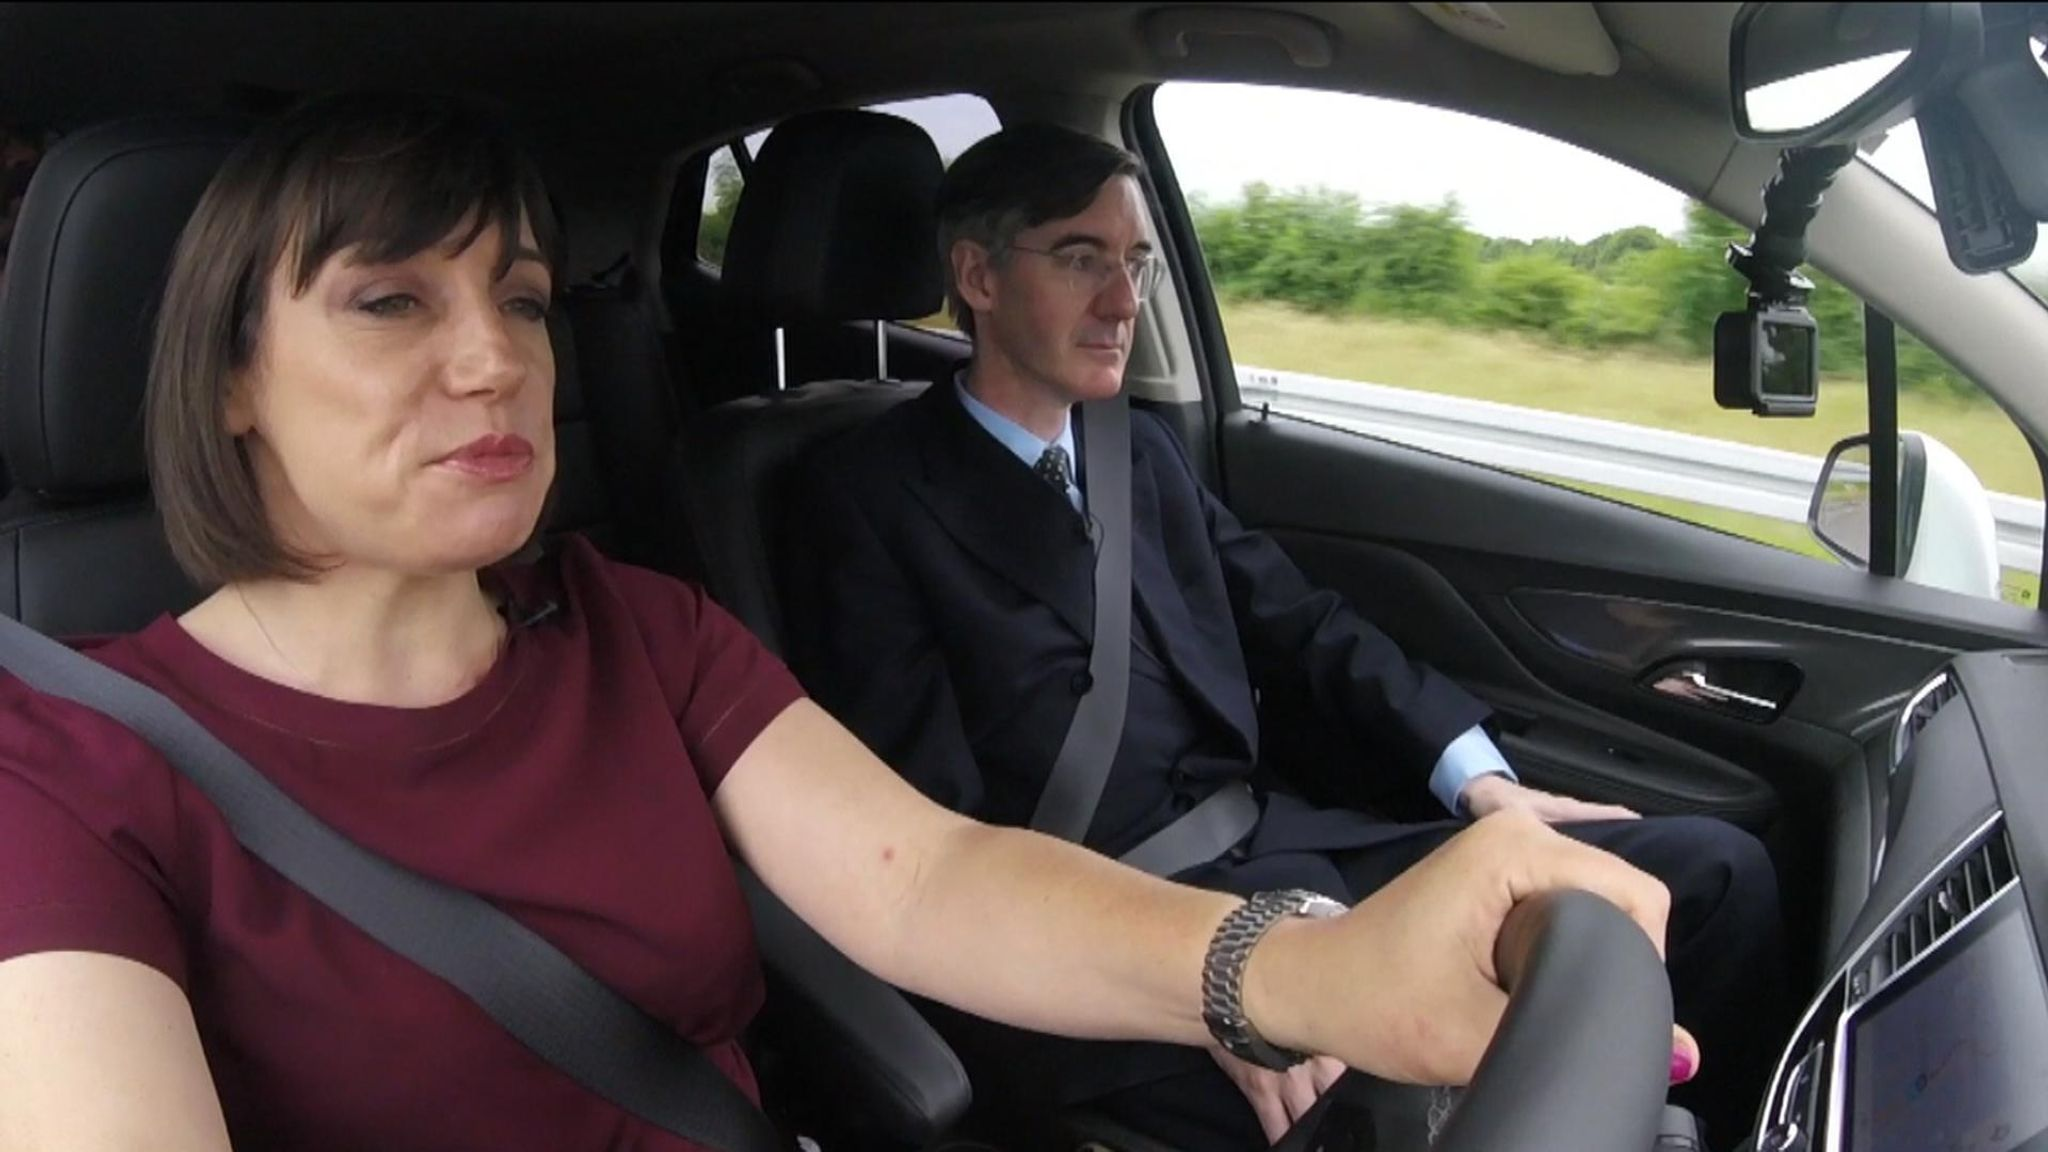 Jacob Rees-Mogg at Irish border: 'UK can win game of chicken